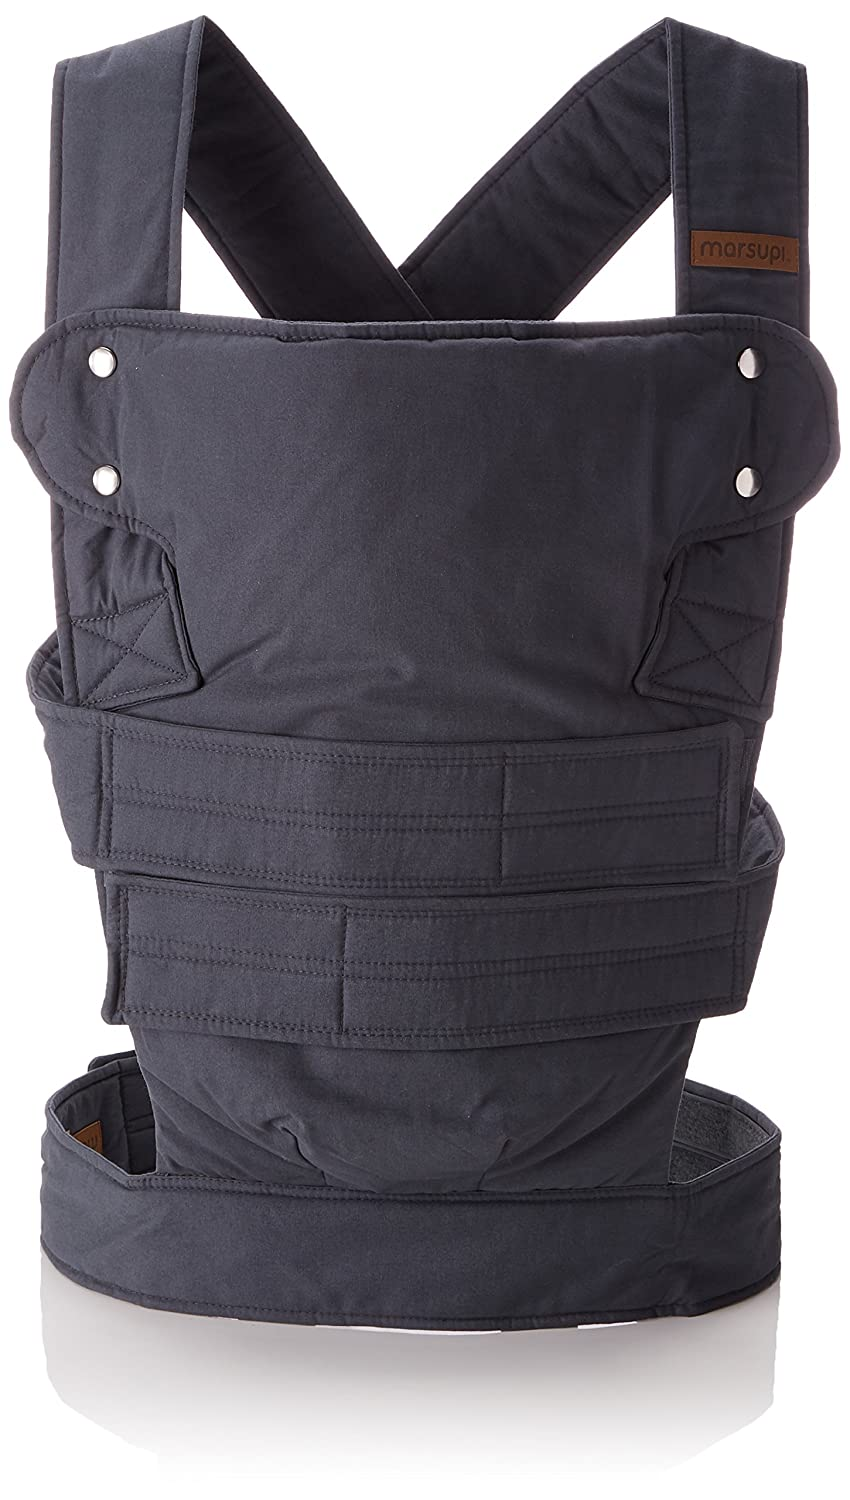 Marsupi Baby and Child Carrier Front and Hip Baby Carrier Wickelkinder GmbH Marburg 144-44-80-001